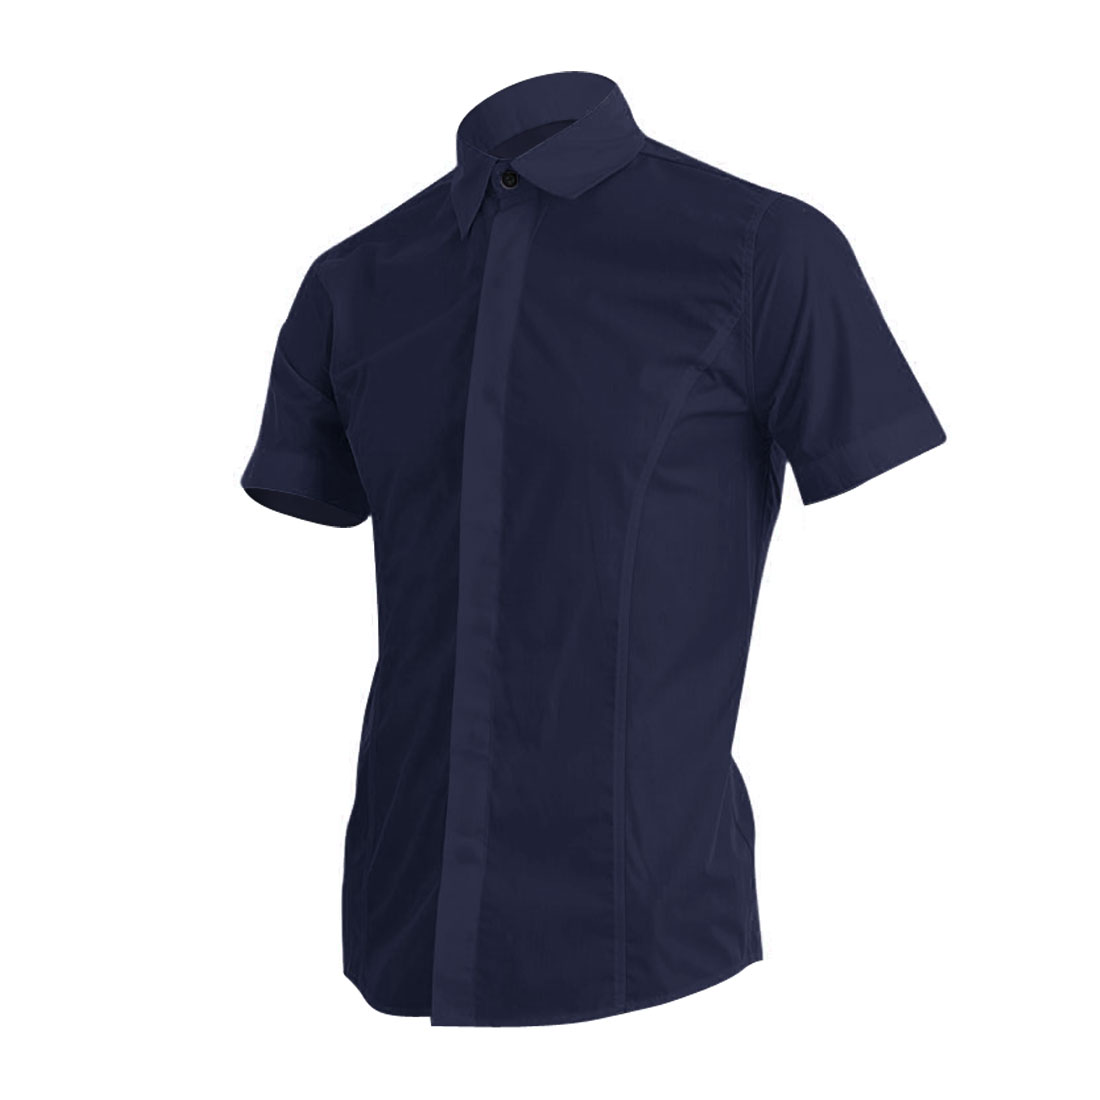 Man Solid Color Short Sleeve Point Collar Chic Shirt Dark Blue M